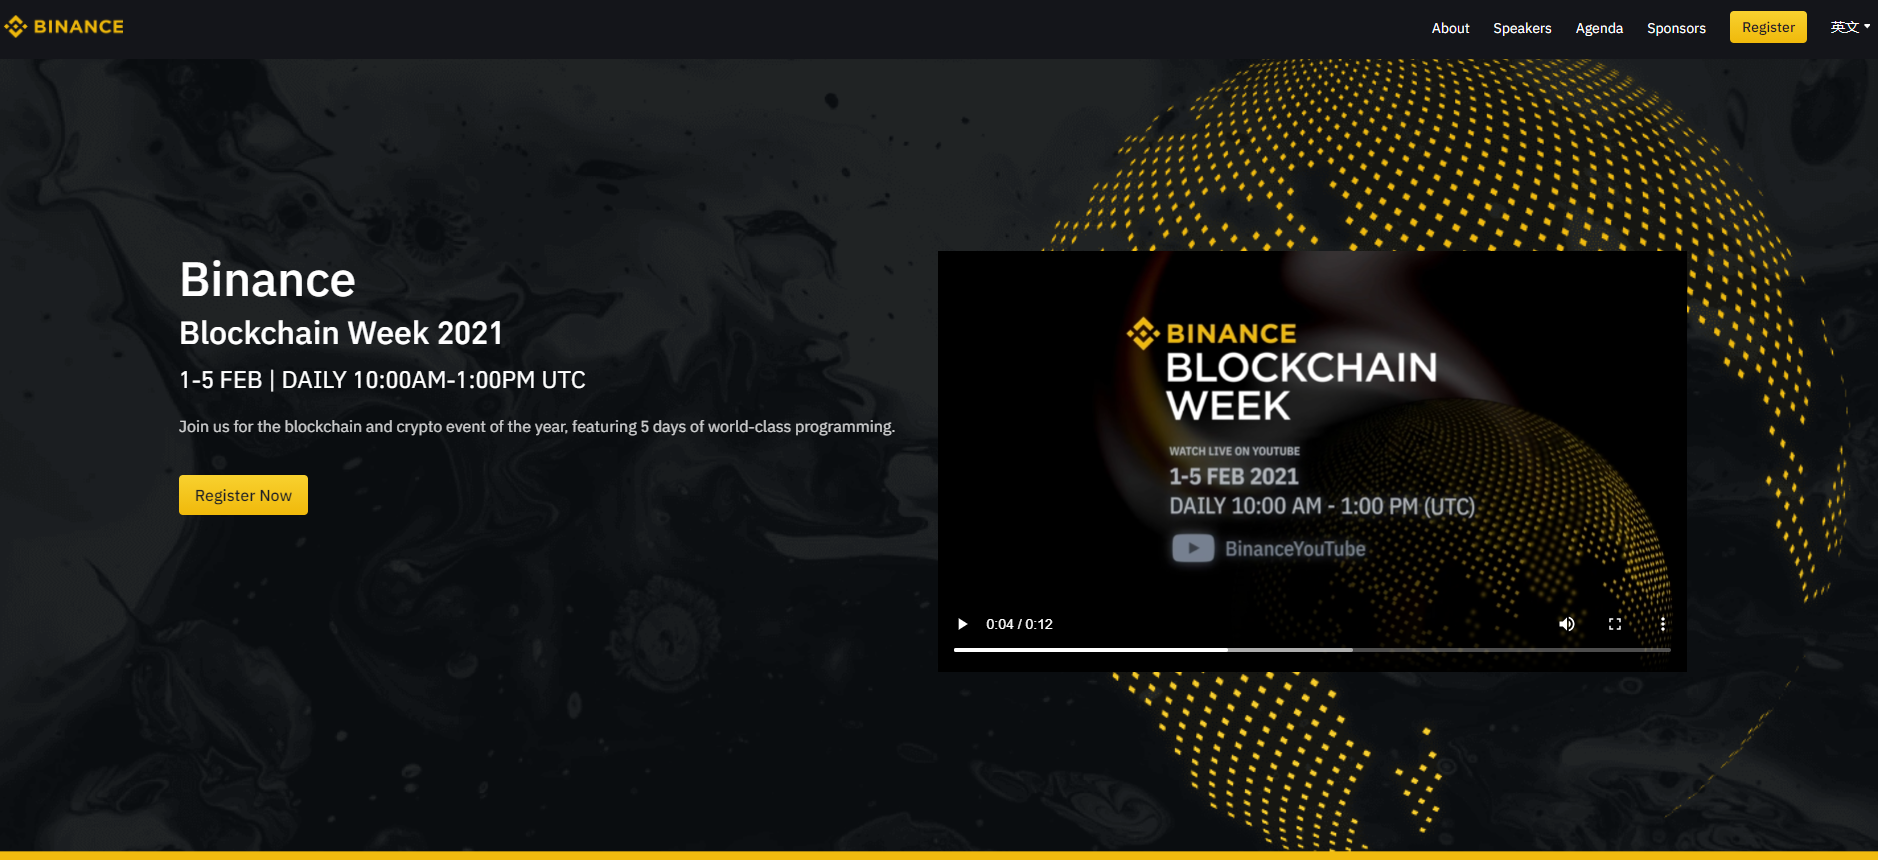 Binance Blockchain Week 2021 The Future Is Now